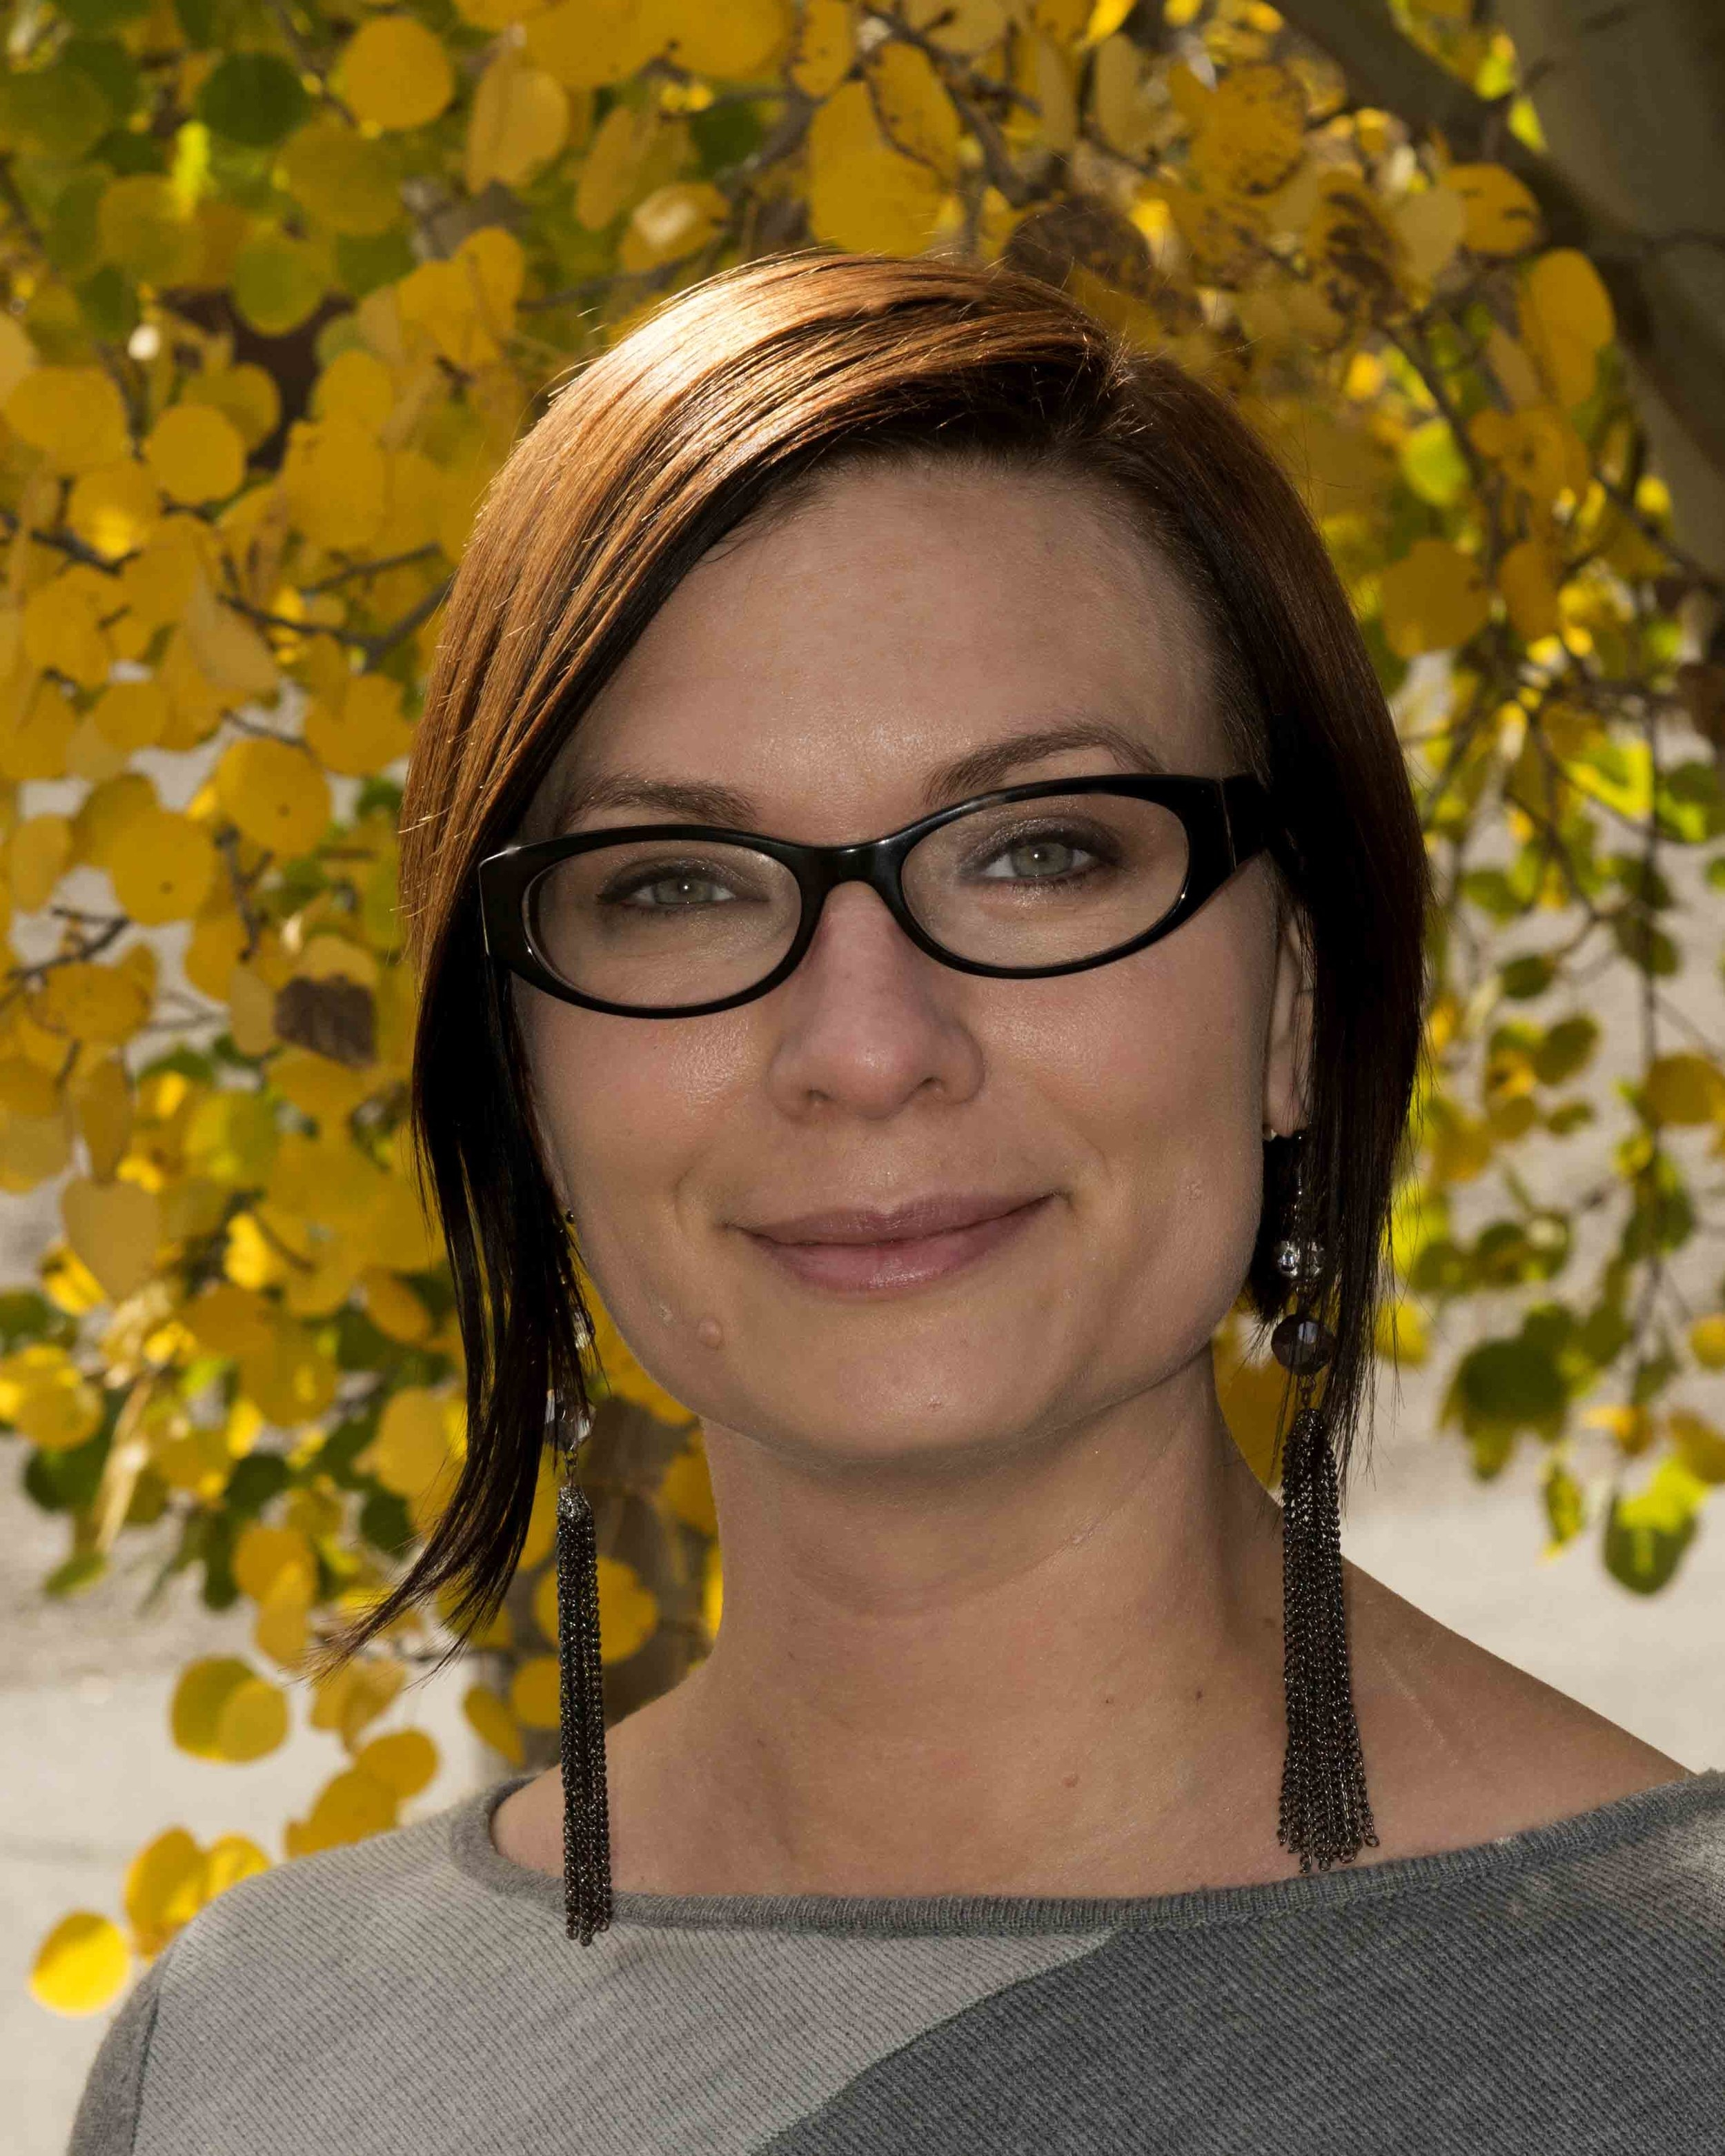 JESSIE CRUICKSHANK - Jessie is a ordained Foursquare minister and regional denominational leader. She's a demonstrated disciple-maker and experiential education neuroscientist. She is a nationally recognized leader in the fields of Experiential Education and Educational Neuroscience and holds a Master's from Harvard in Mind, Brain, and Education. Jessie is a published academic and has edited several books on the application of neuroscience and cognitive psychology to the field of education. She and her husband currently live in Denver, CO. You can follower her on Twitter here.